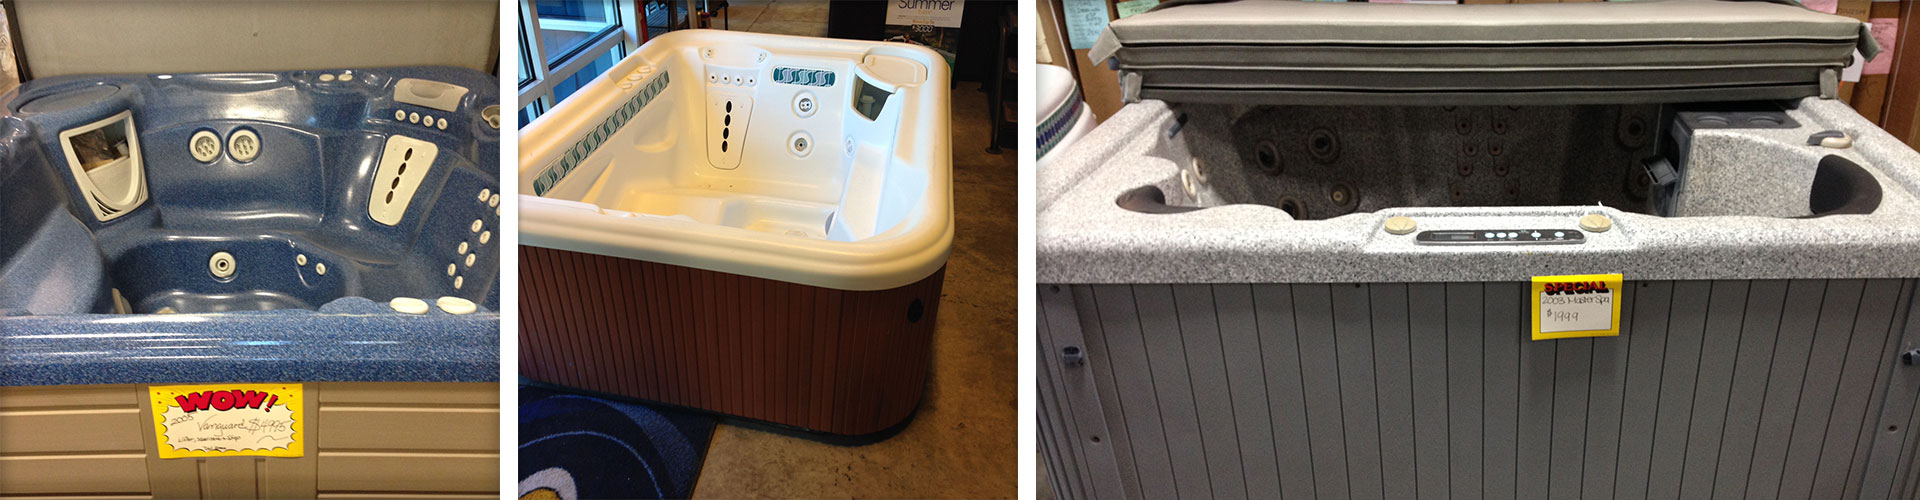 The smart way to buy a used hot tub